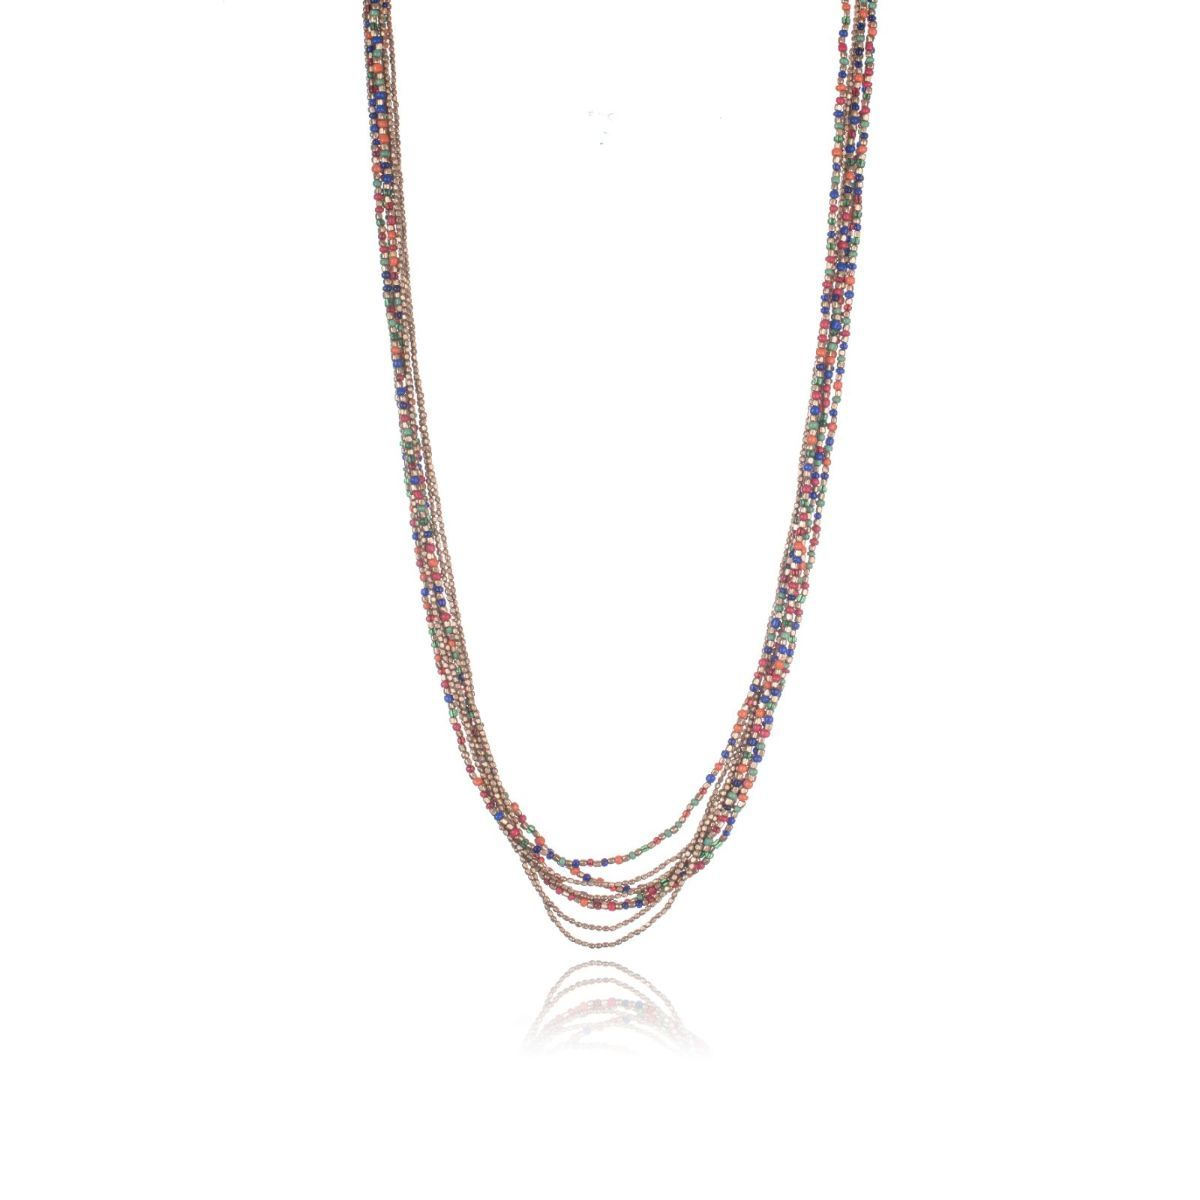 Pompeii long necklace of multi-strand gold and multi-colored beads